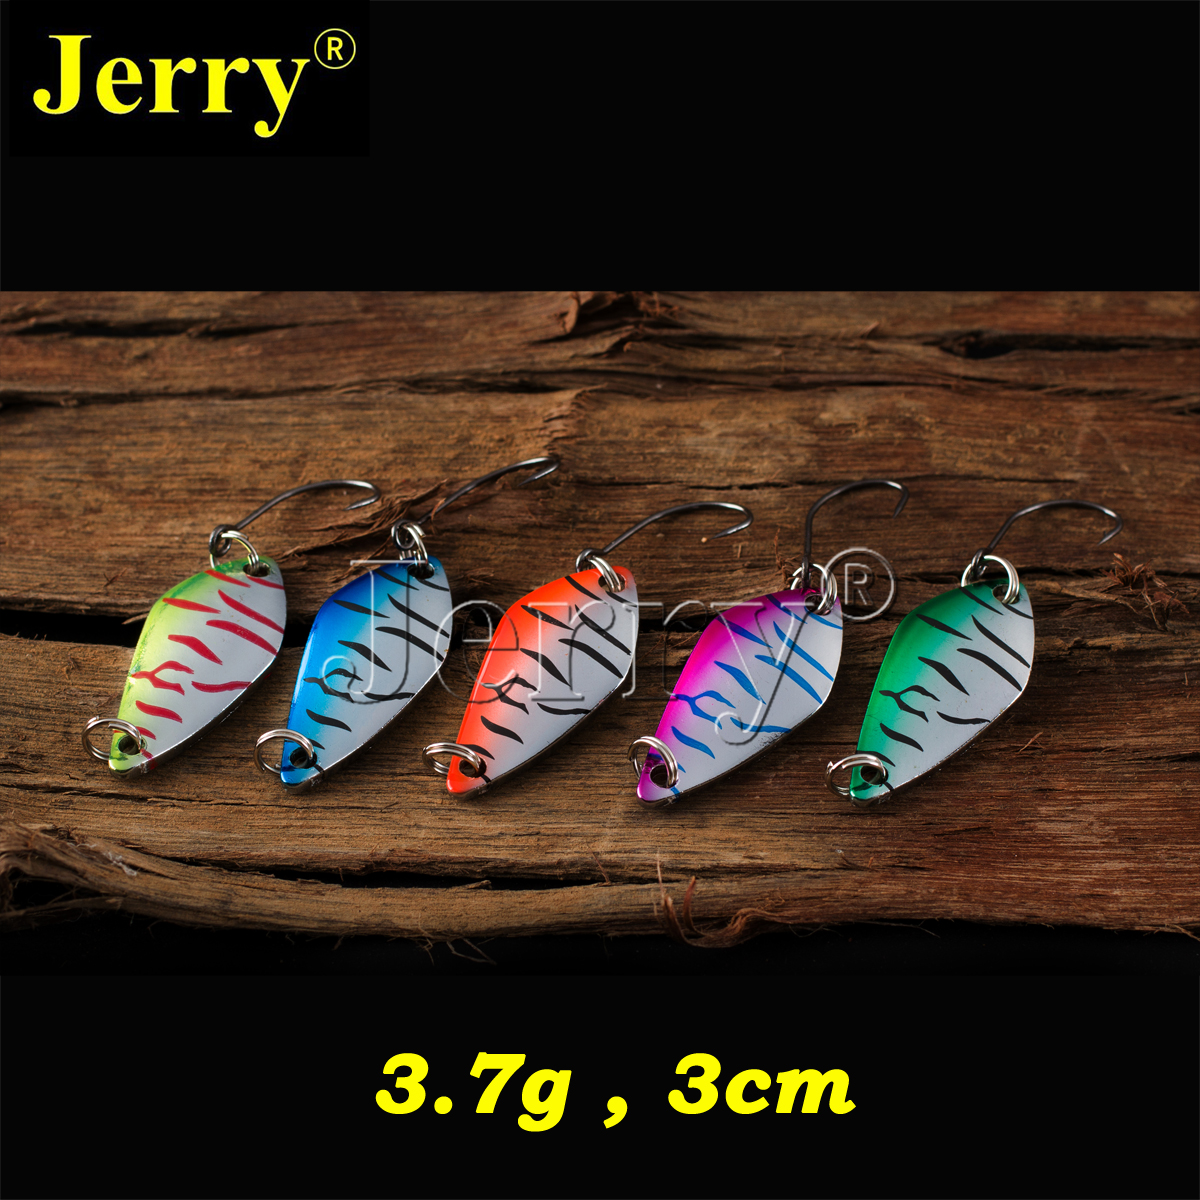 Jerry 5pcs 3.7g freshwater artificial bait perch metal lures spinner high quality lightweight fishing spoons microbial quality of freshwater prawn